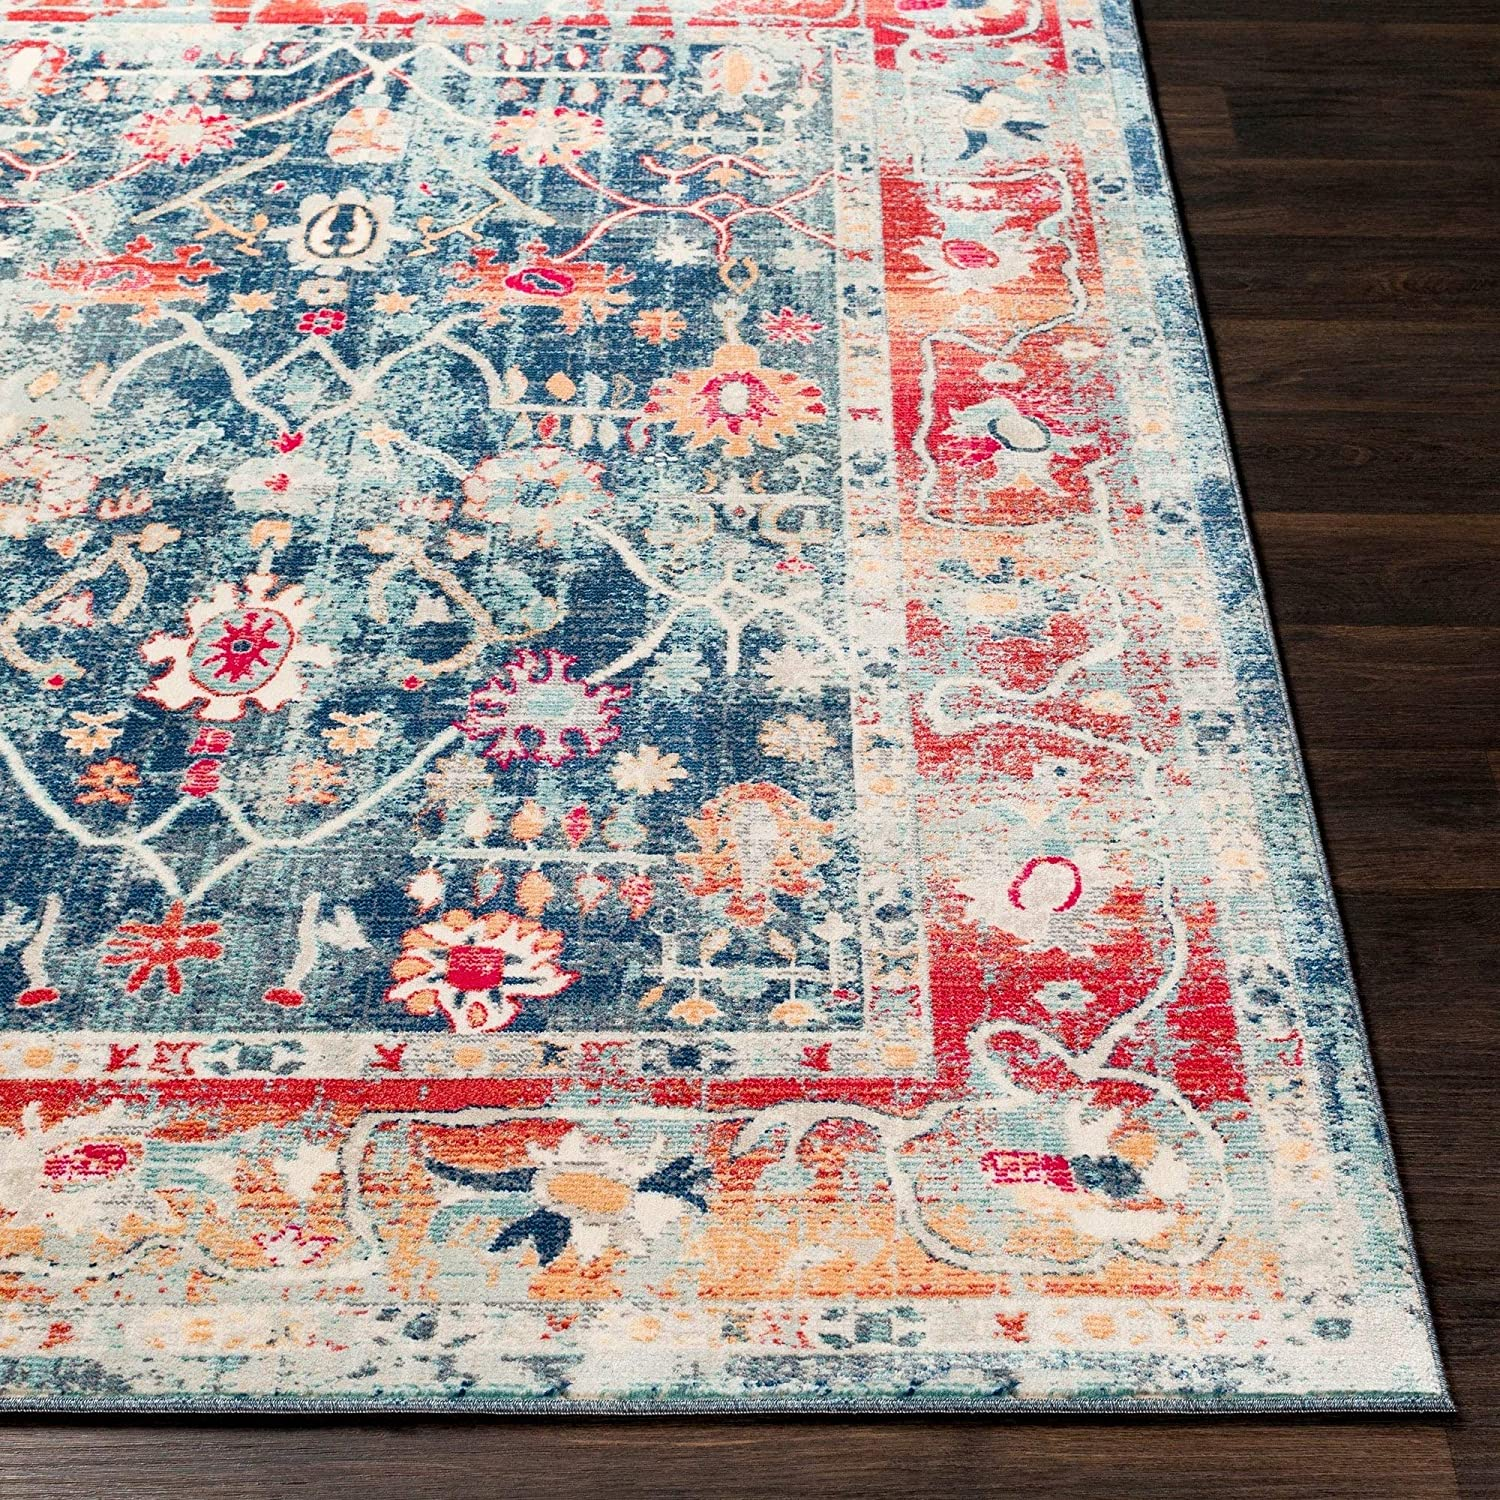 "MISC Navy Red Updated Traditional Area Rug 3'11"" X 5'7"" Blue Oriental Polypropylene Synthetic Latex Free Pet Friendly Stain Resistant"